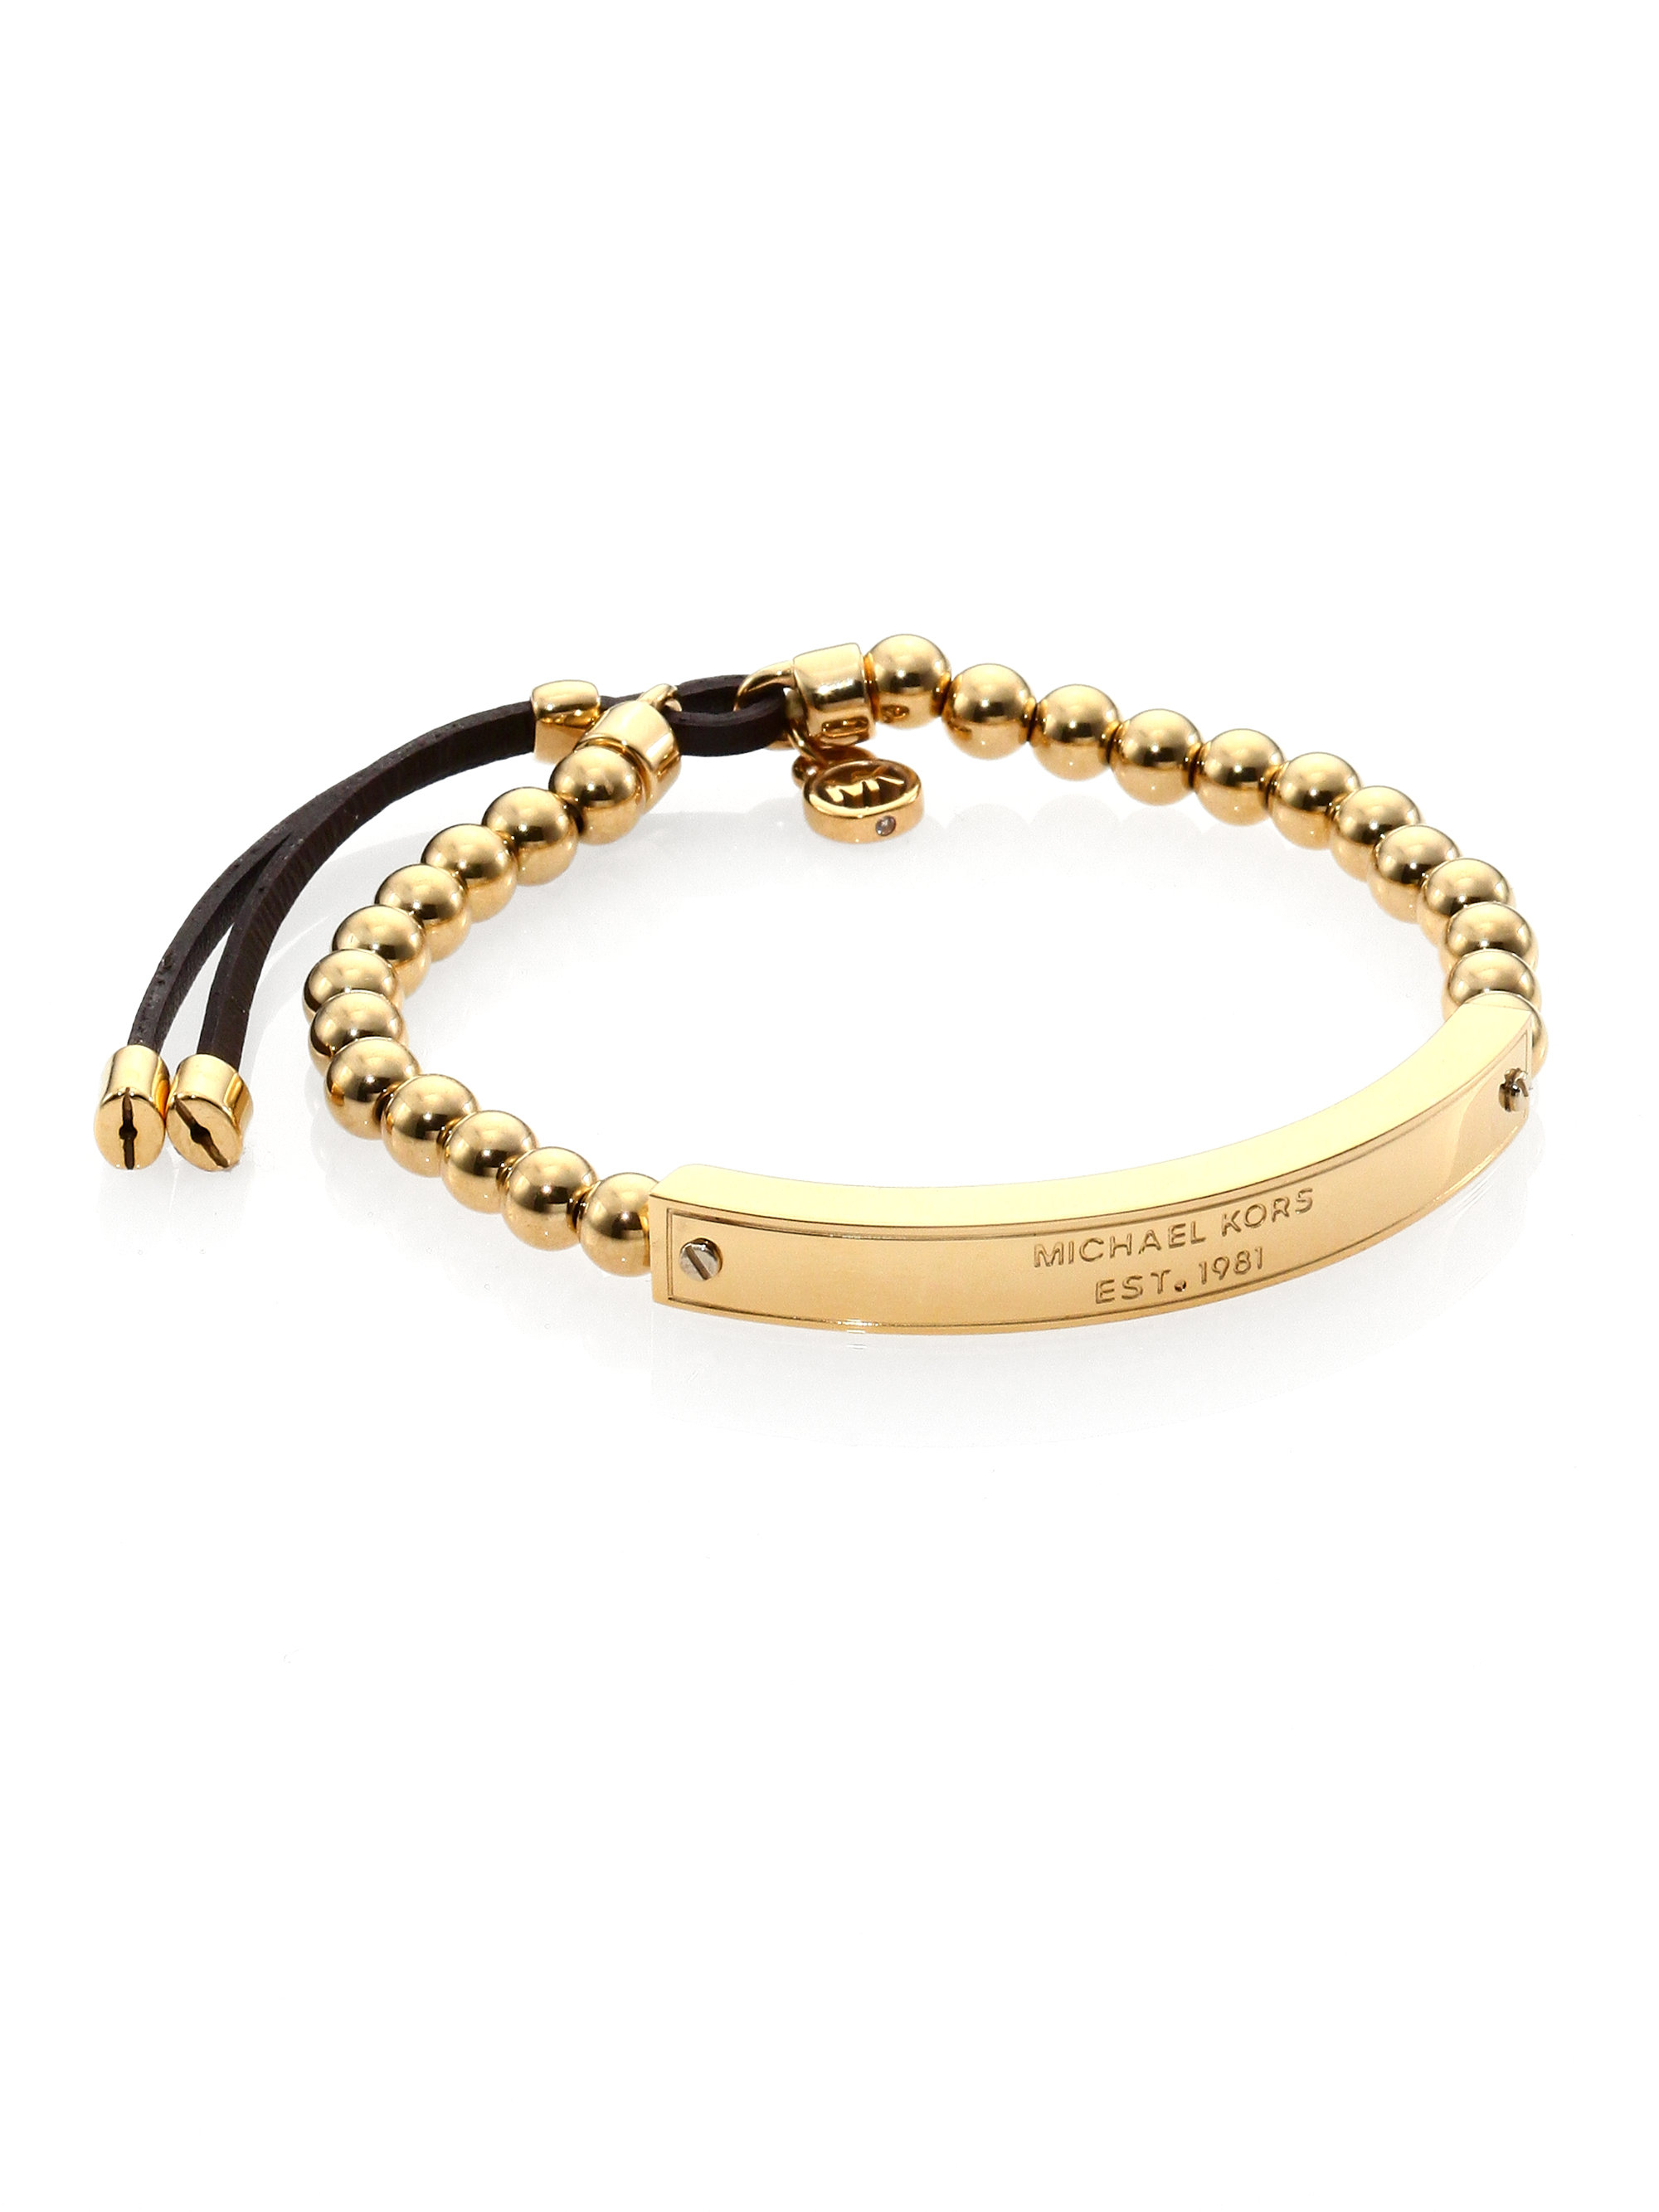 michael kors logo plaque beaded leather bracelet in gold lyst. Black Bedroom Furniture Sets. Home Design Ideas